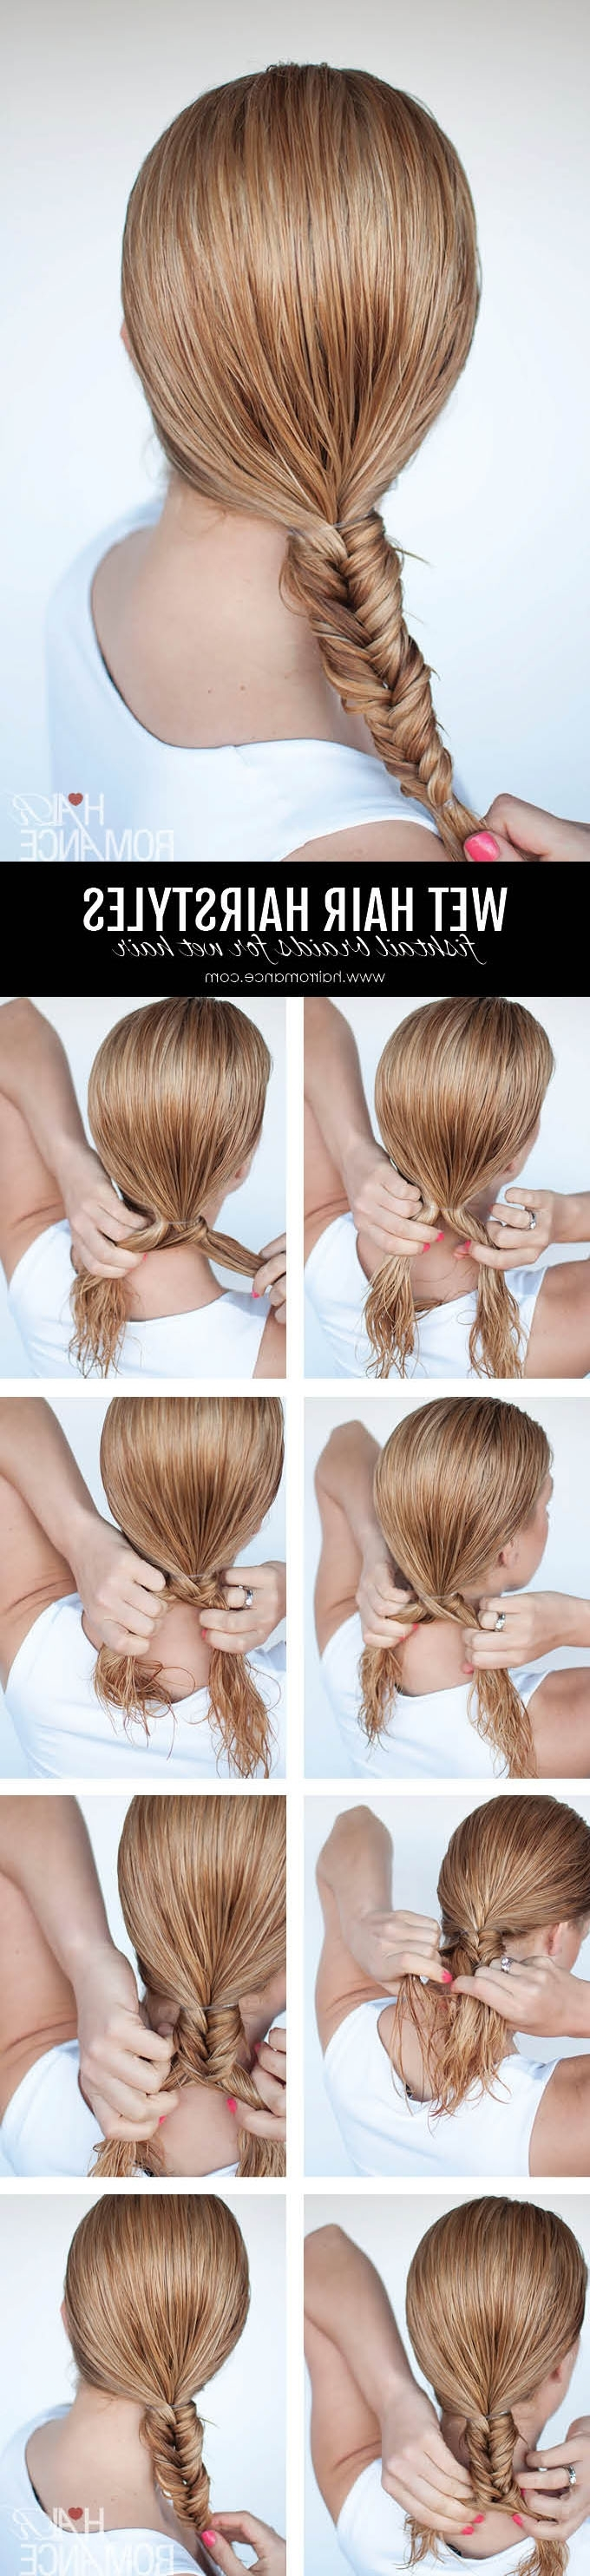 Hairstyles For Wet Hair: 3 Simple Braid Tutorials You Can Wear In Pertaining To Wet Hair Updo Hairstyles (View 14 of 15)